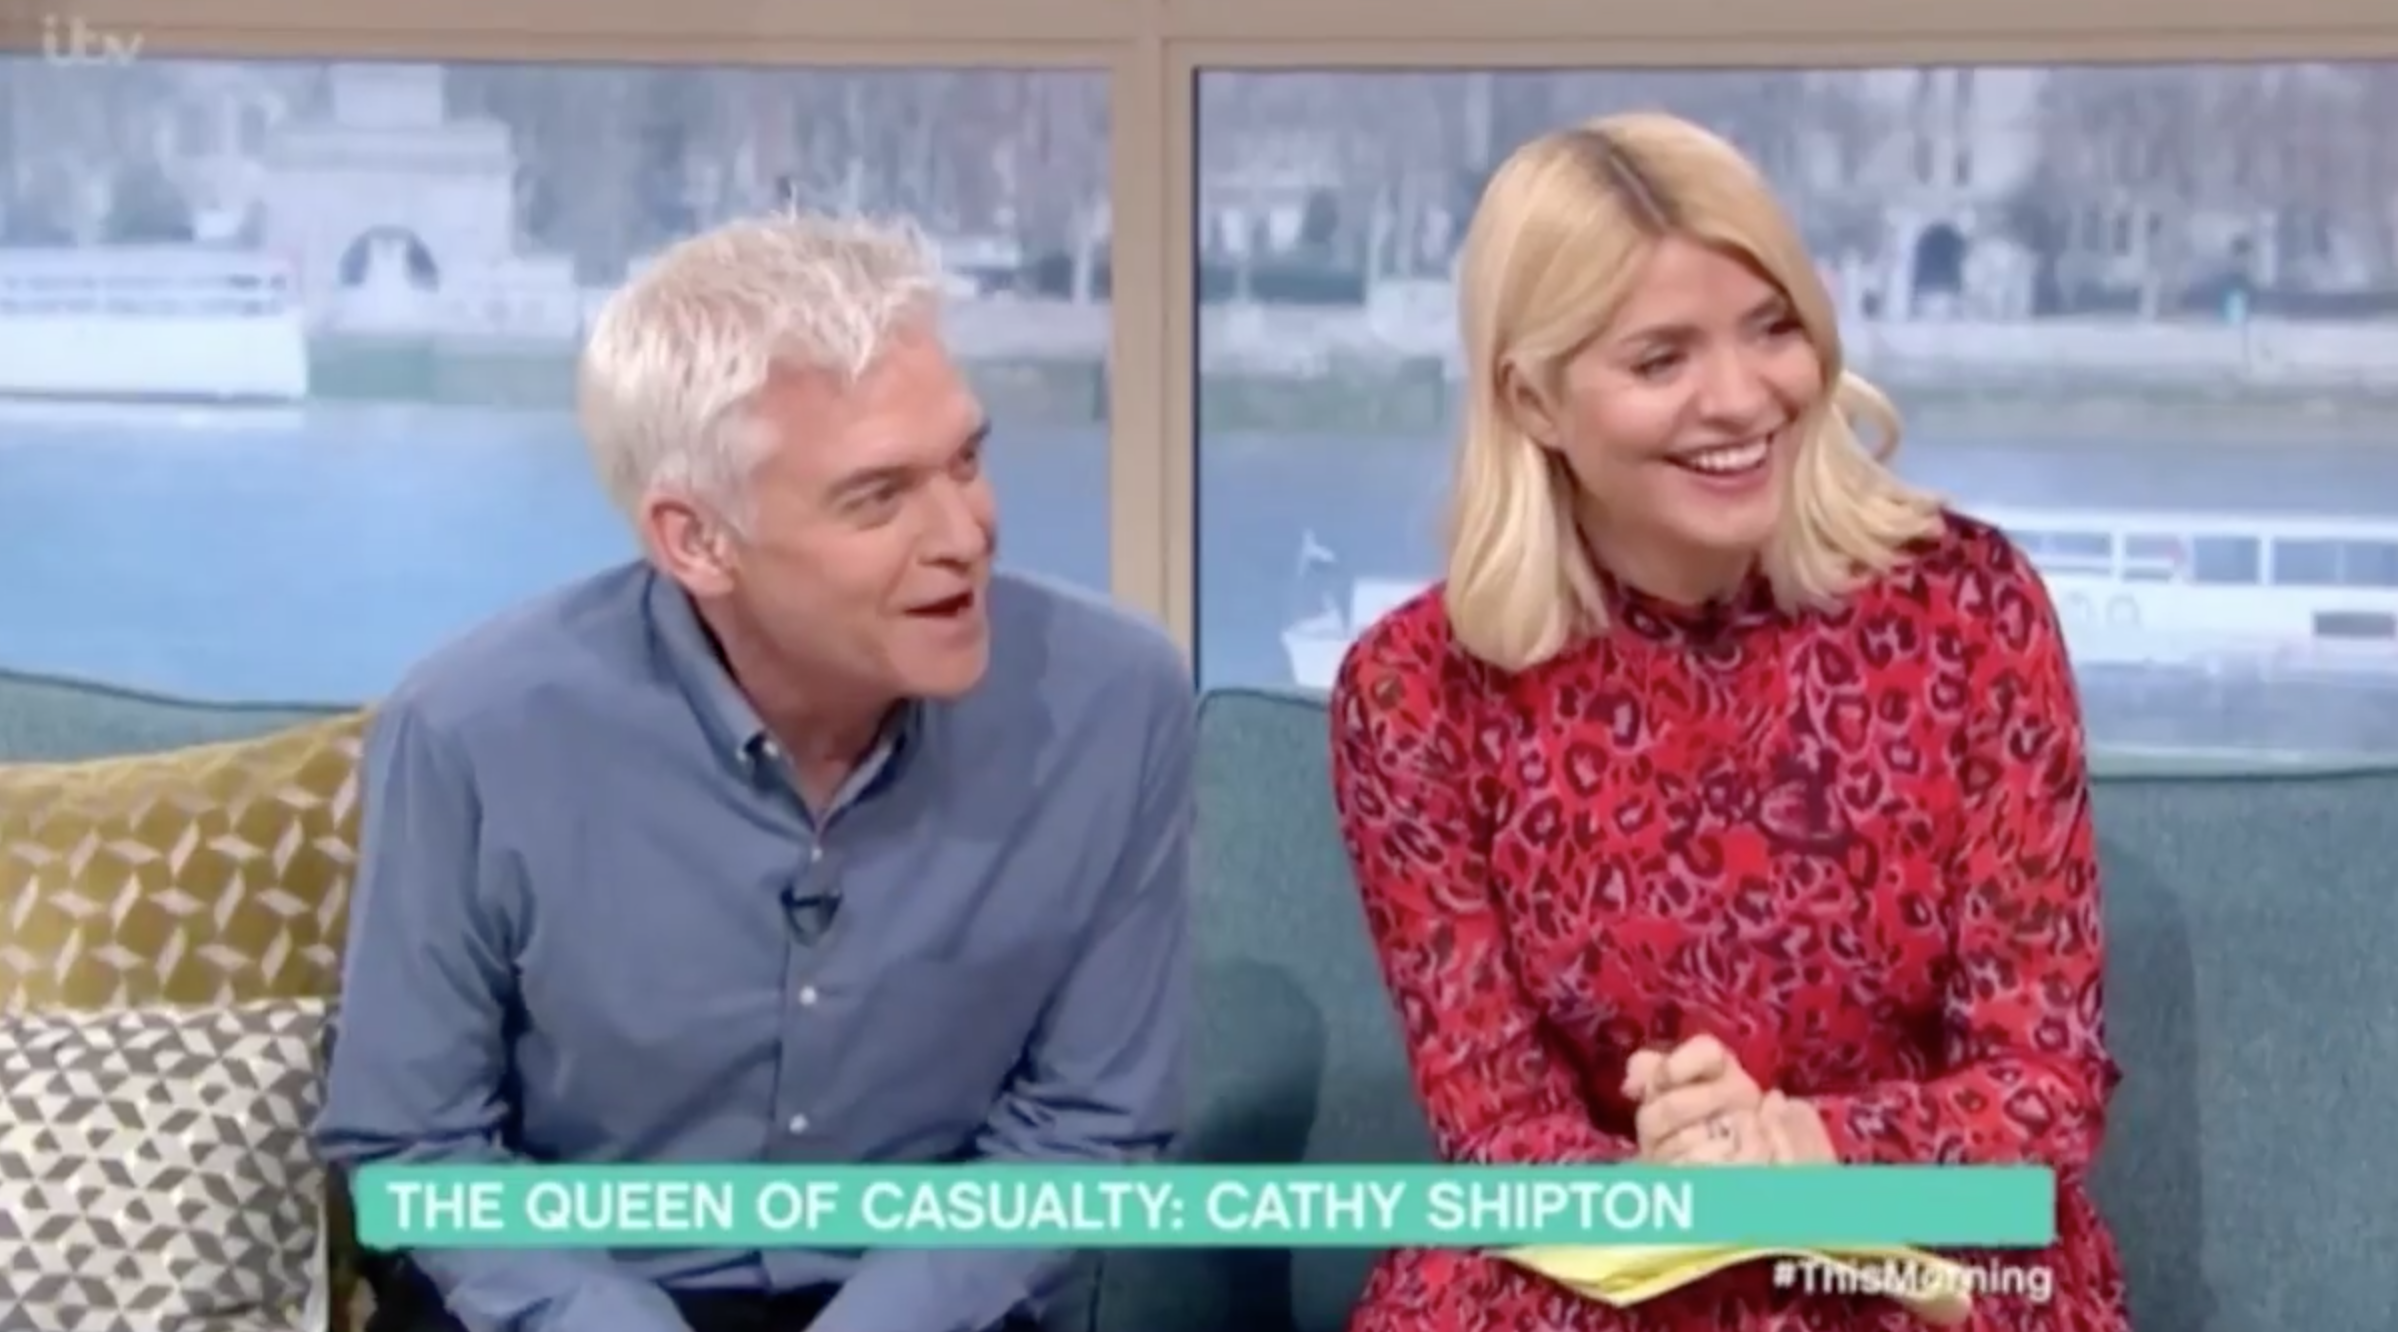 Holly Willoughby and Phillip Schofield interview Cathy Shipton